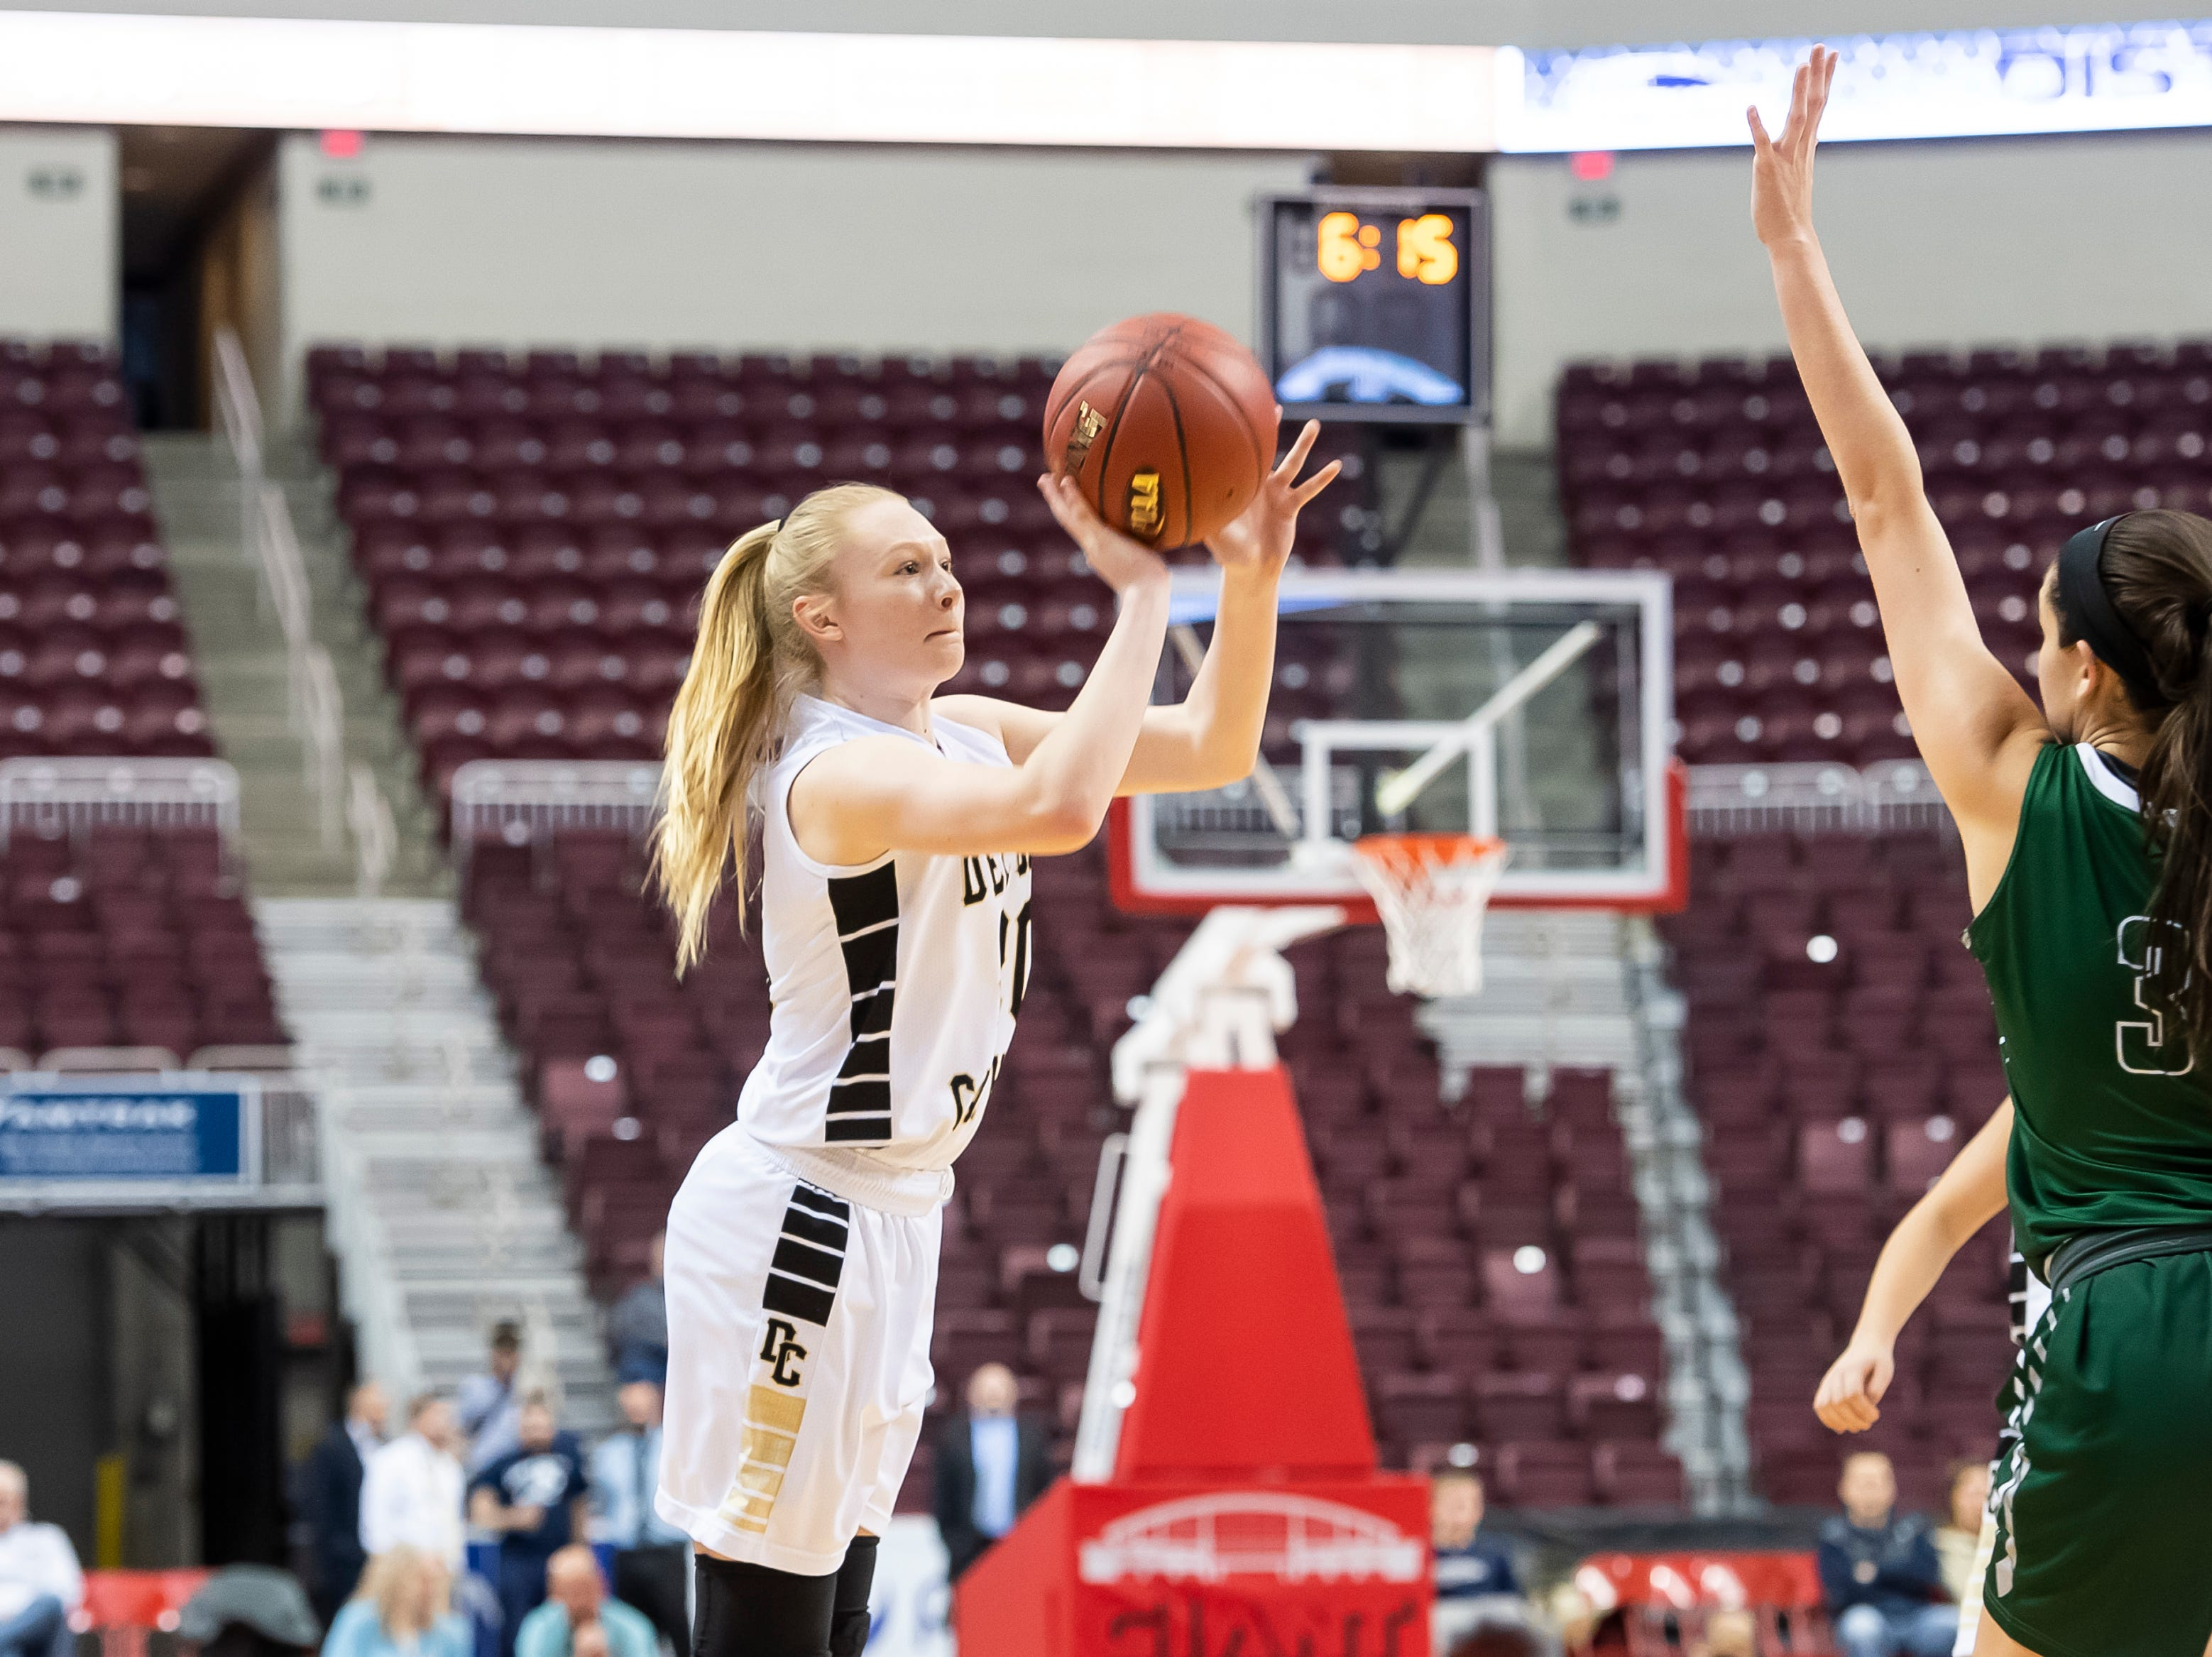 Delone Catholic's Brooke Lawyer takes a 3-point shot during the District 3 3A girls championship game against Trinity at the Giant Center in Hershey Wednesday, Feb. 27, 2019. The Squirettes fell 44-33.